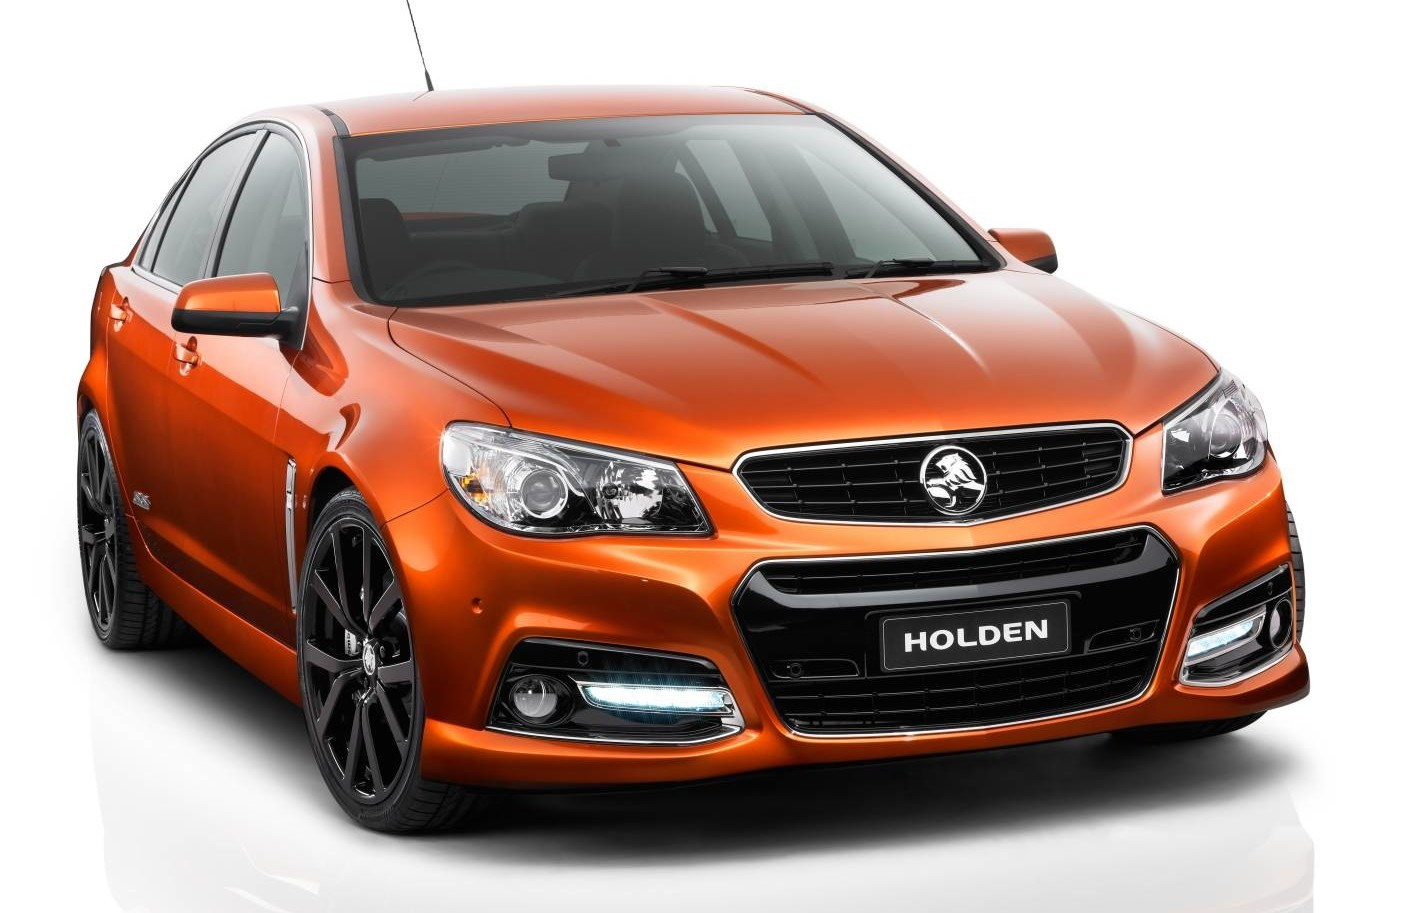 holden images